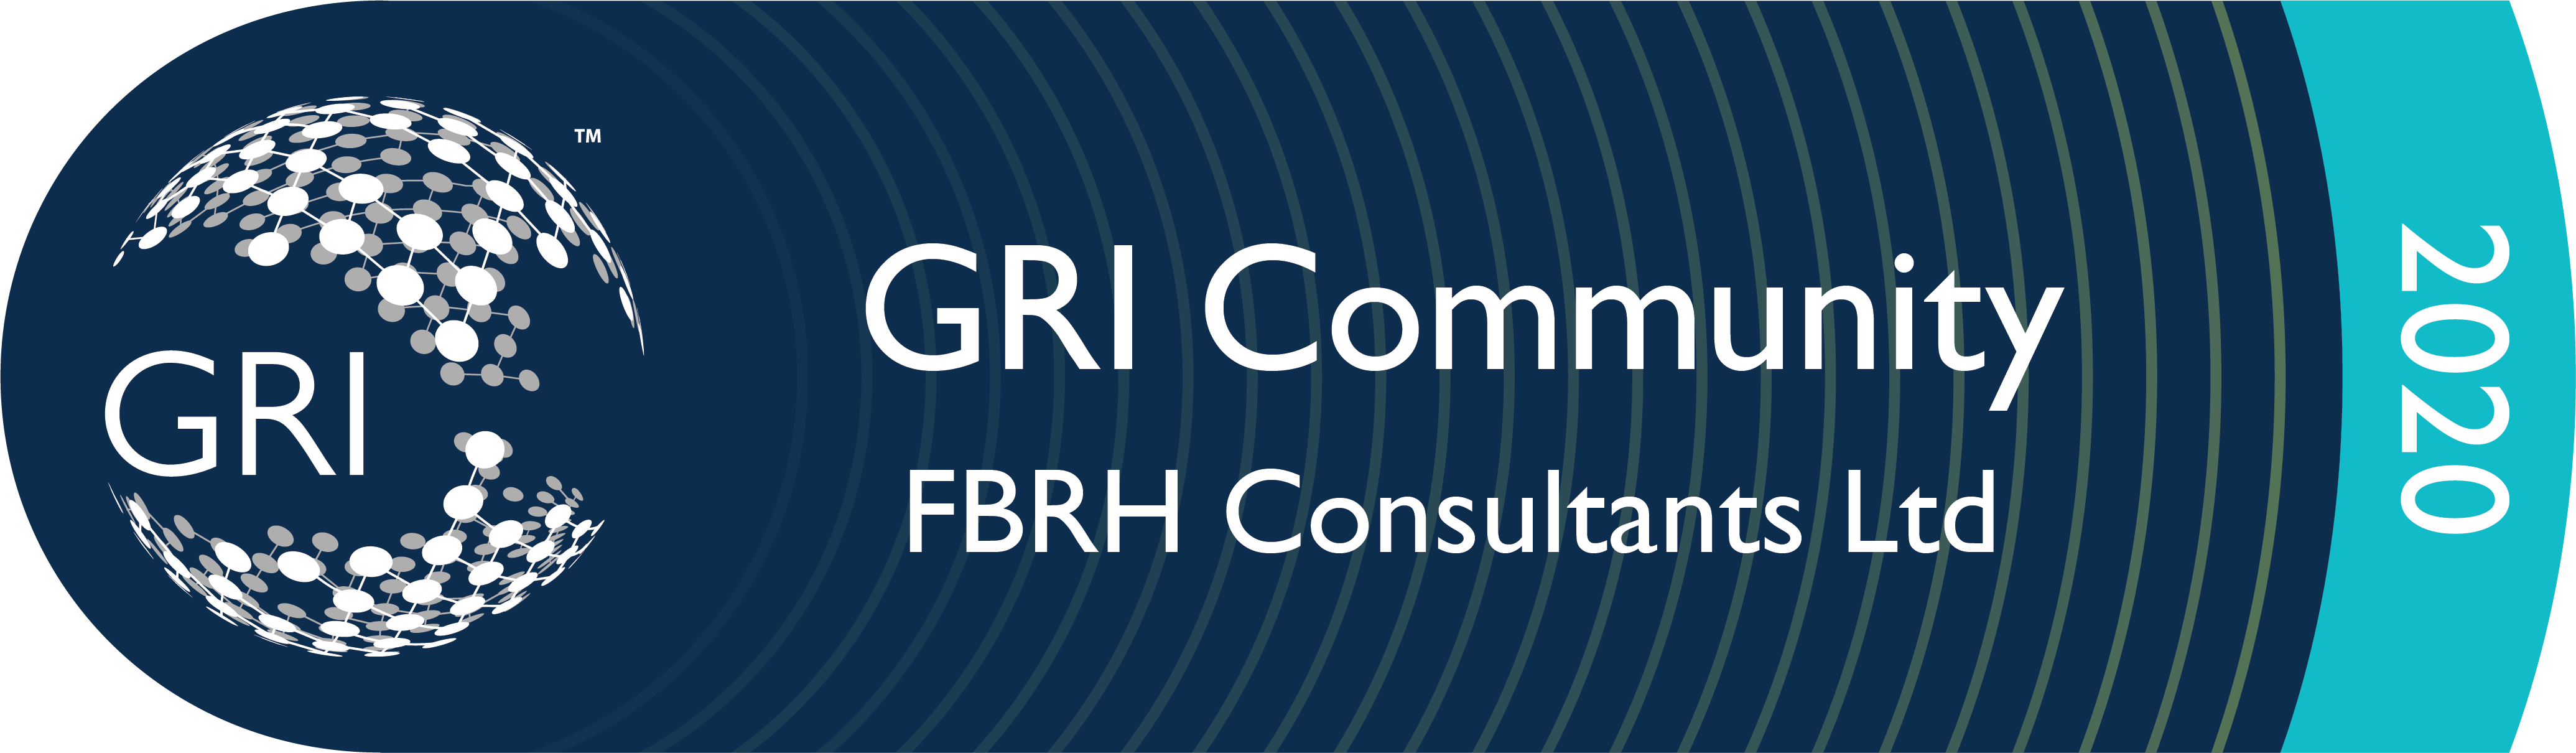 FBRH gri training certified sustainability london uk GRI Gold community Logo